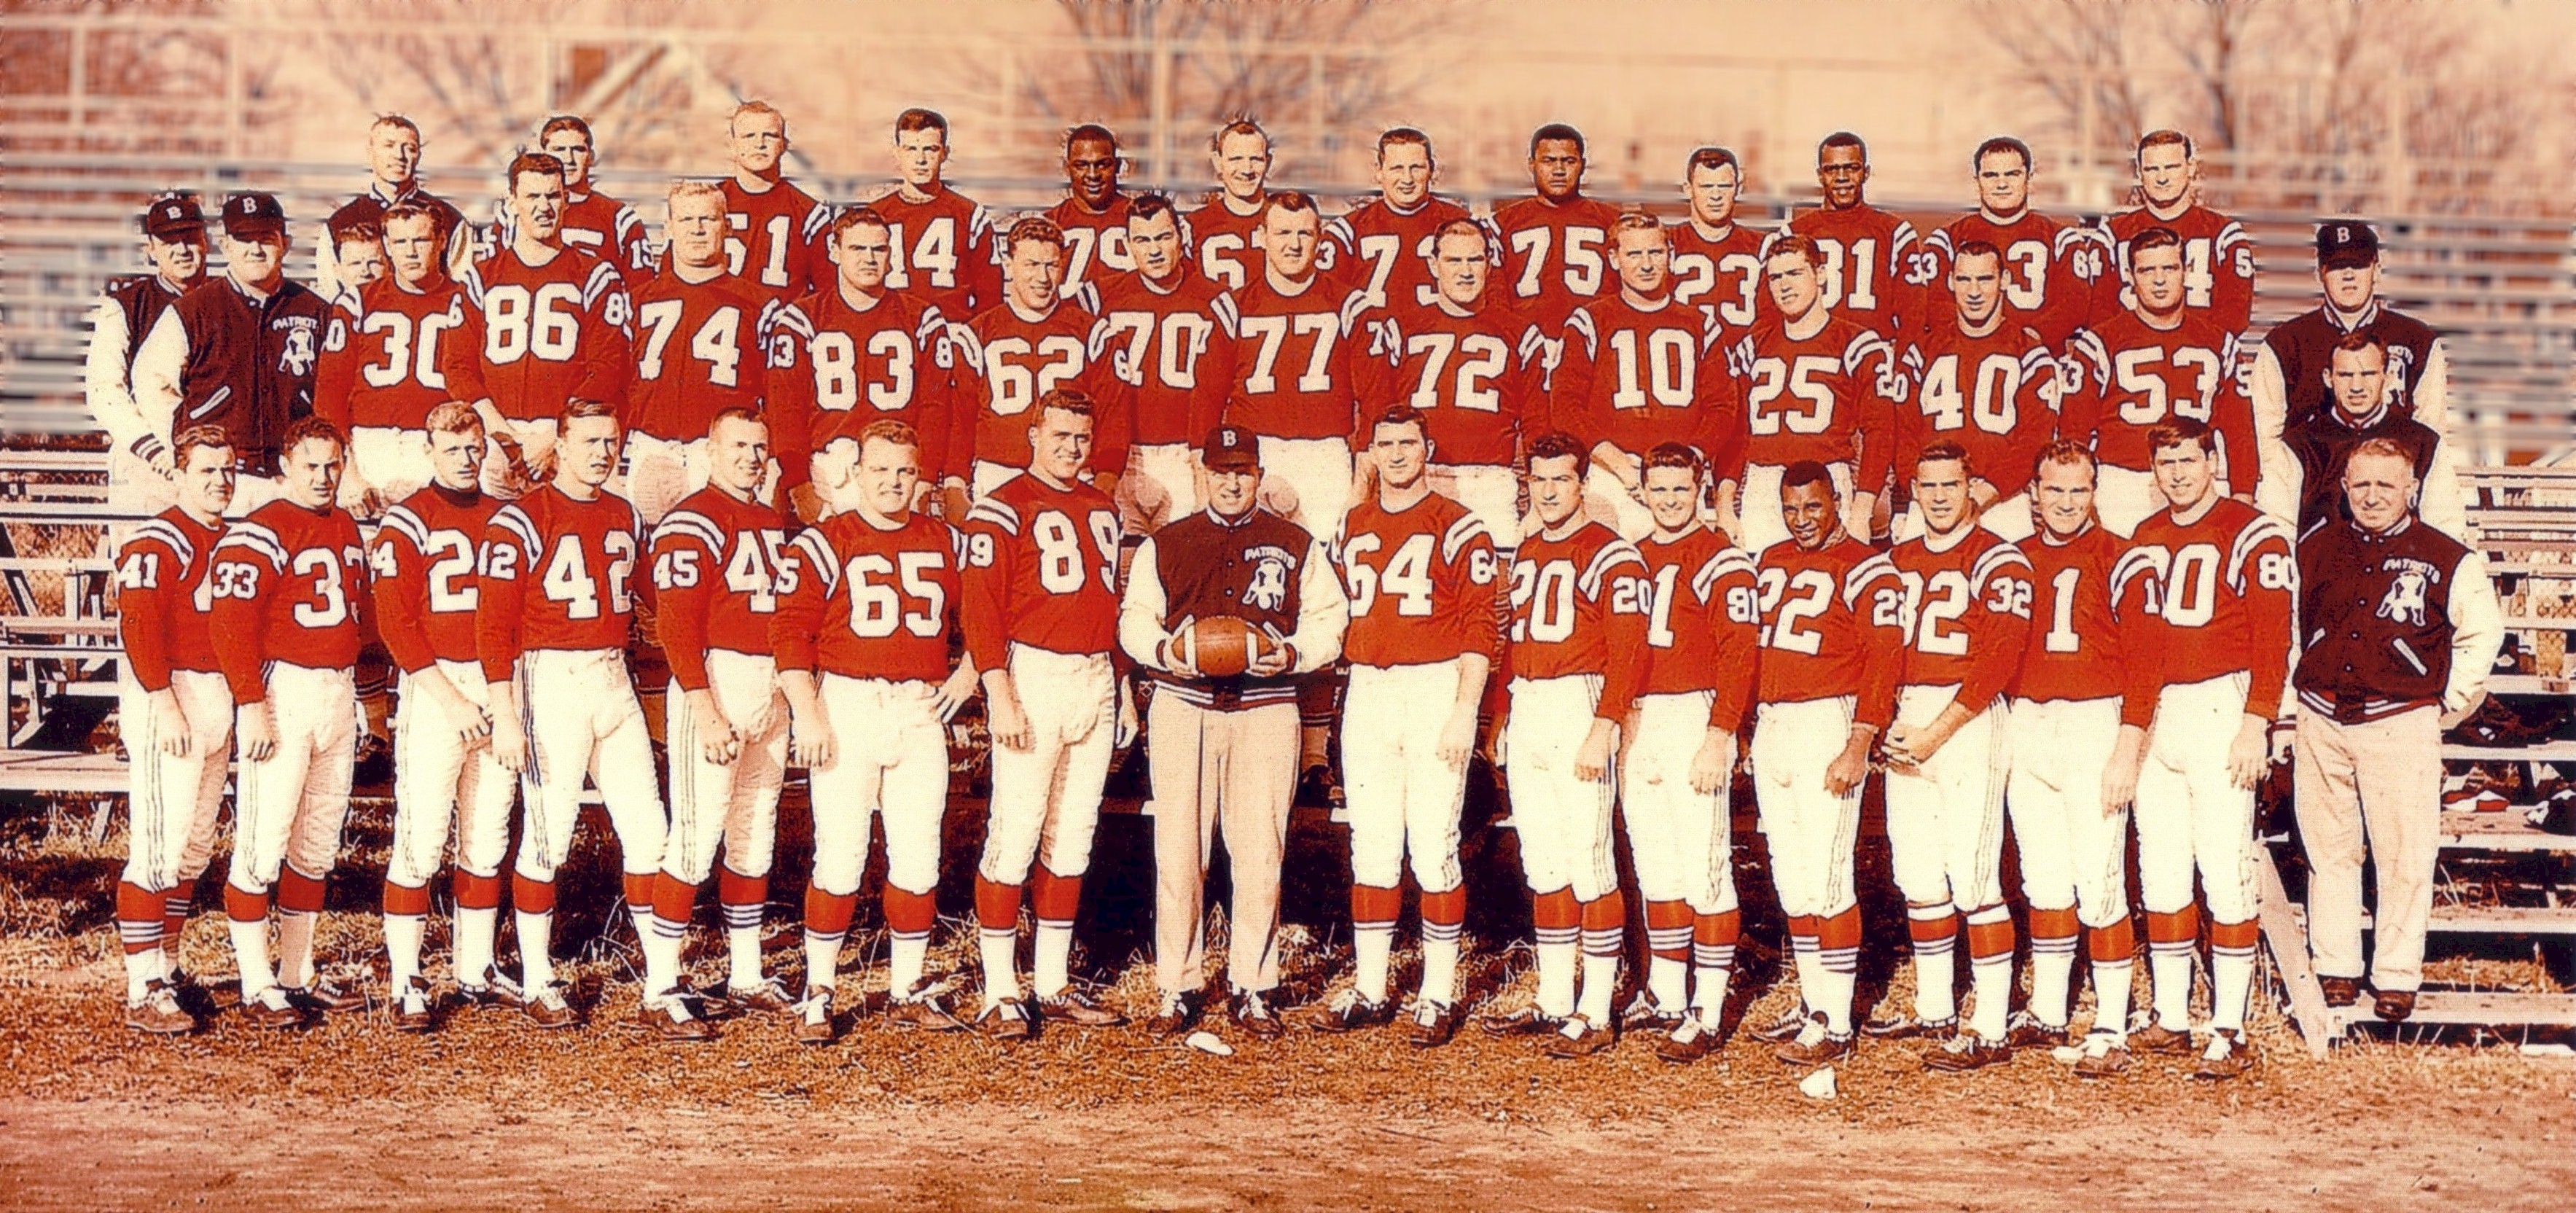 1960 Boston Patriots at training camp in Concord